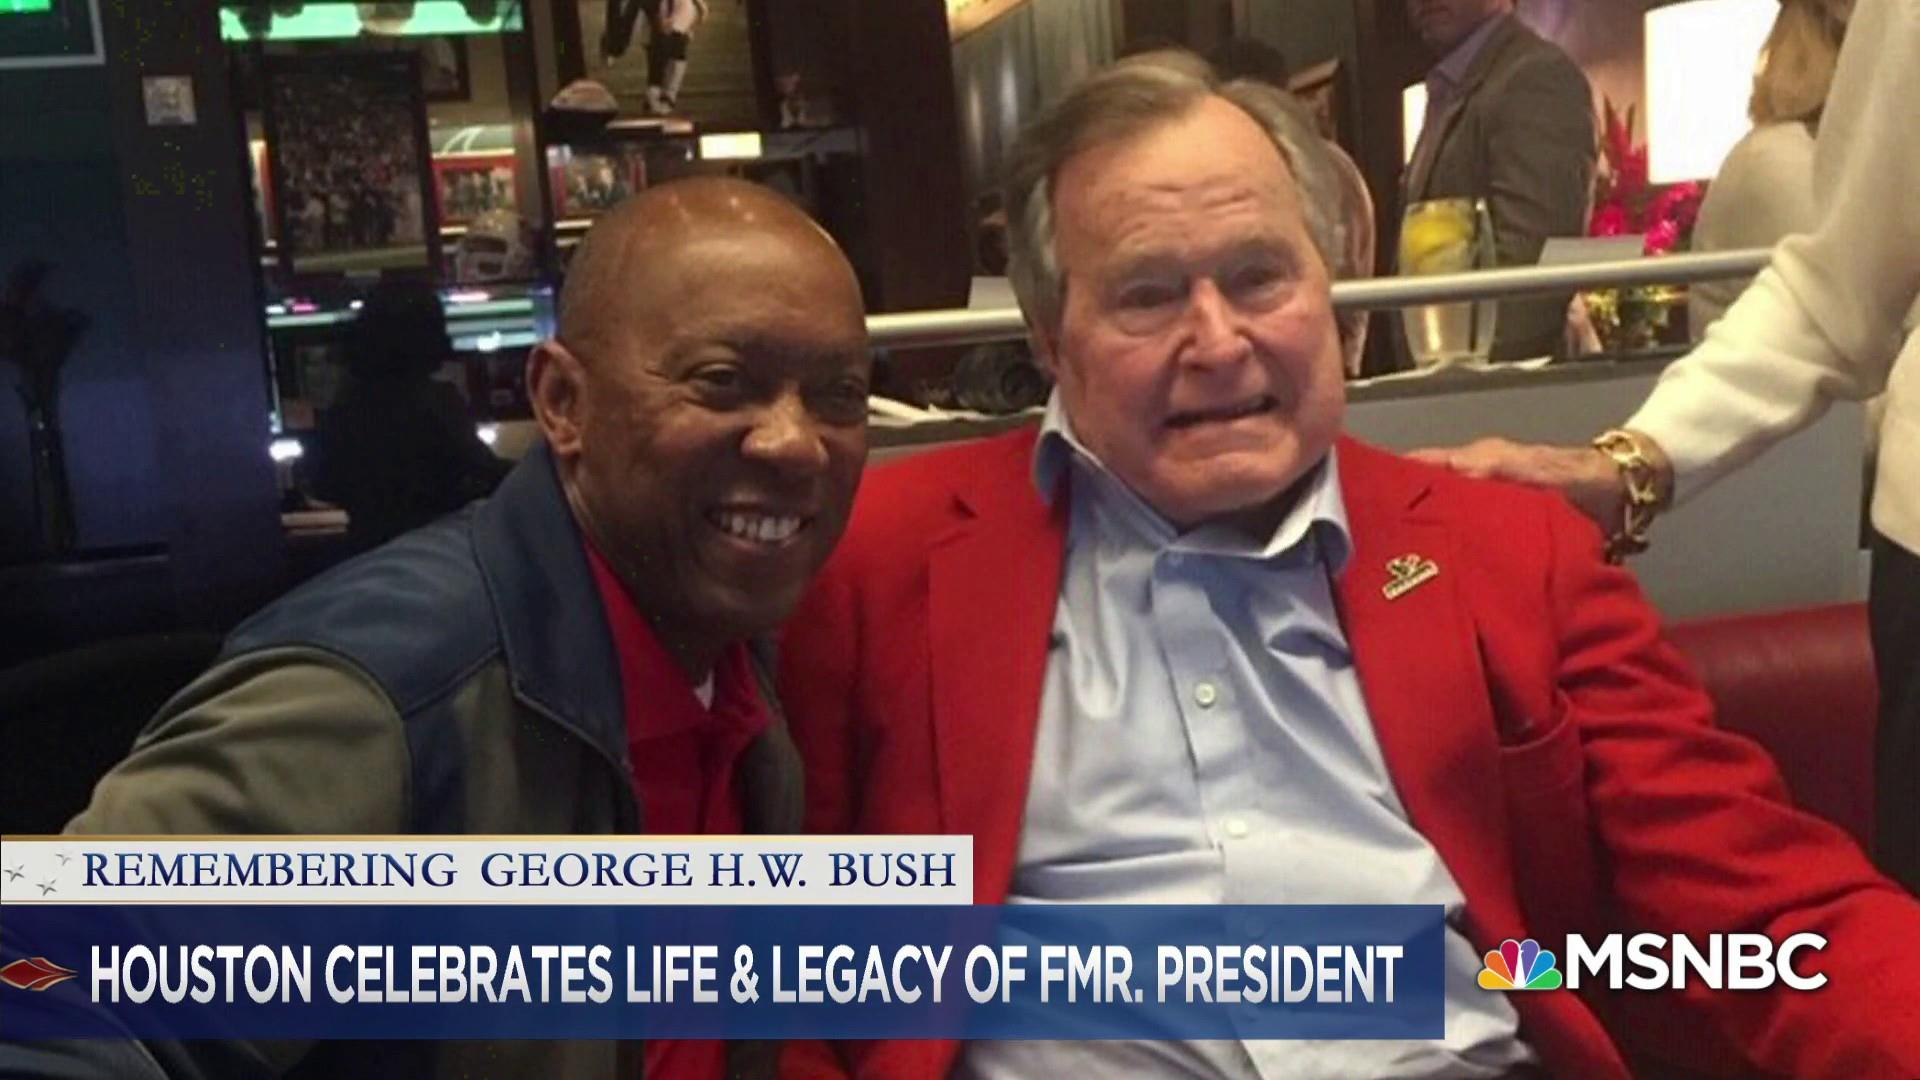 Houston's mayor describes what George H.W. Bush means to city